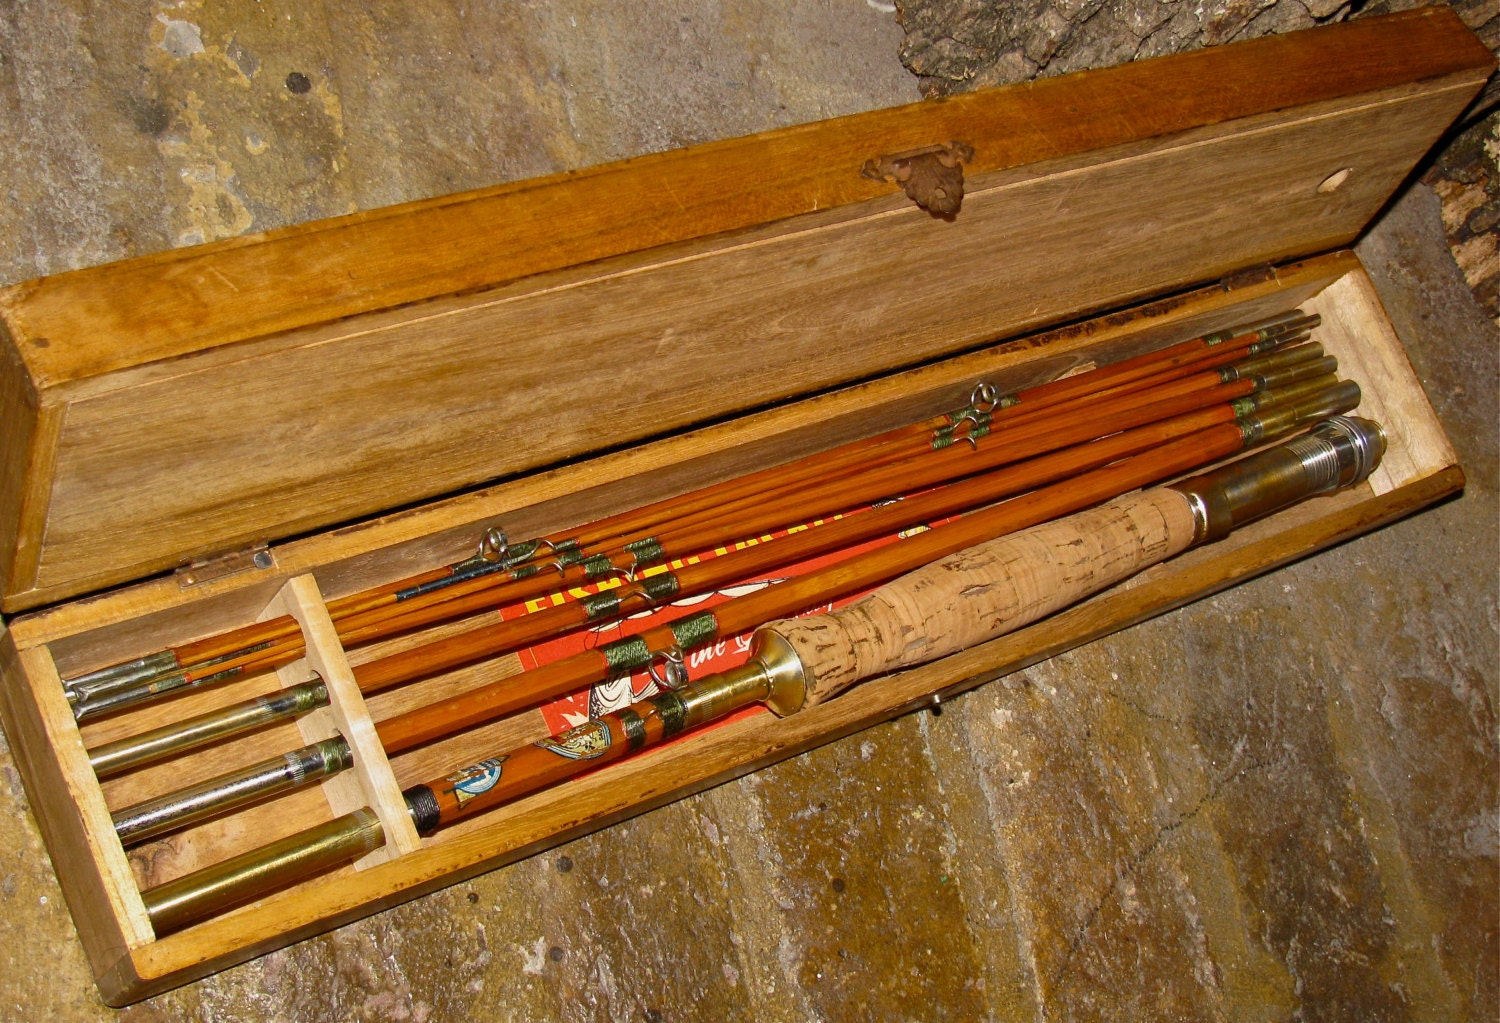 Vintage Bamboo Fly Fishing Rod Amp Wooden Box Case Travel Pack